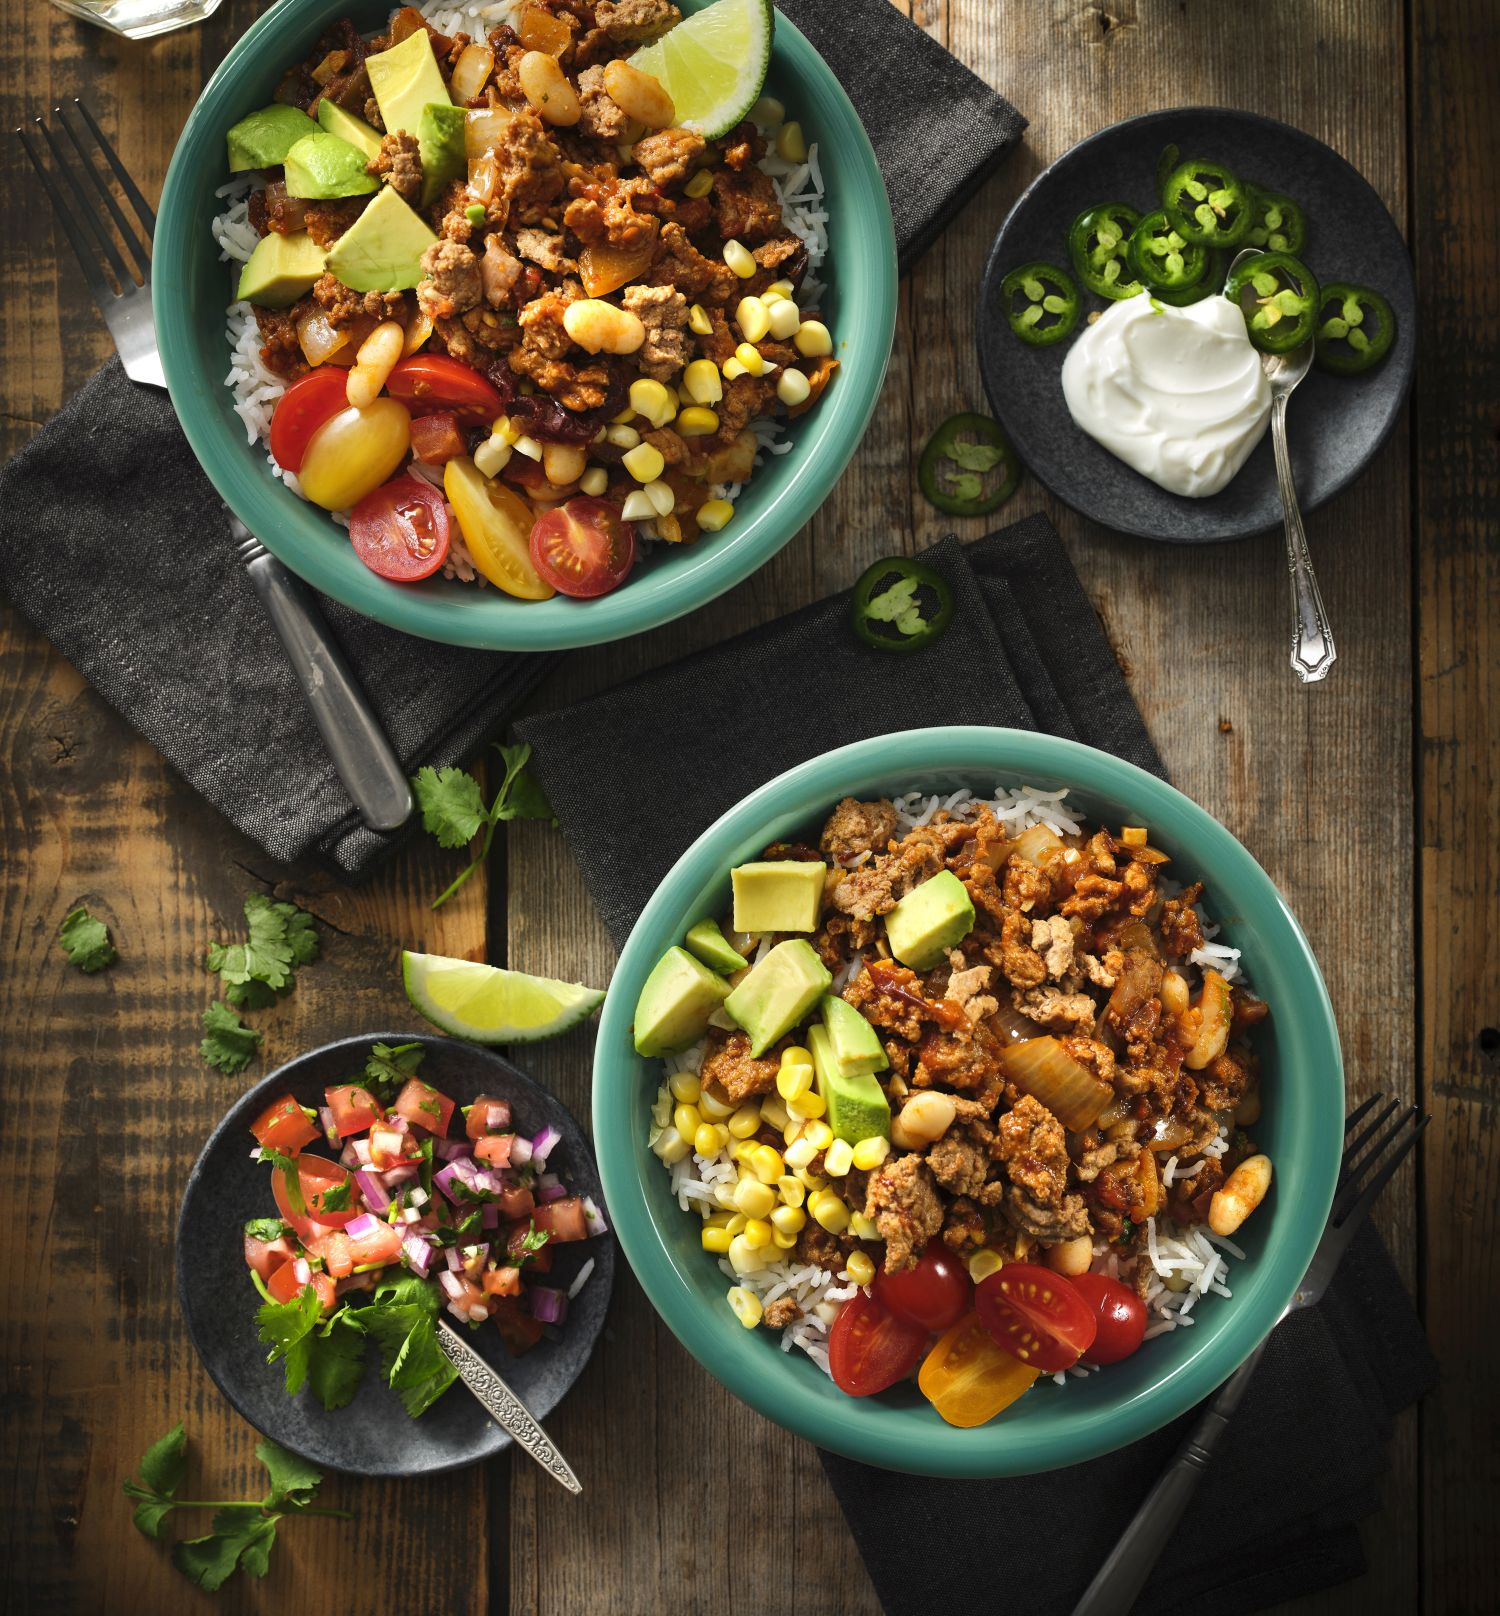 Skillet Chipotle Turkey Burrito Bowl